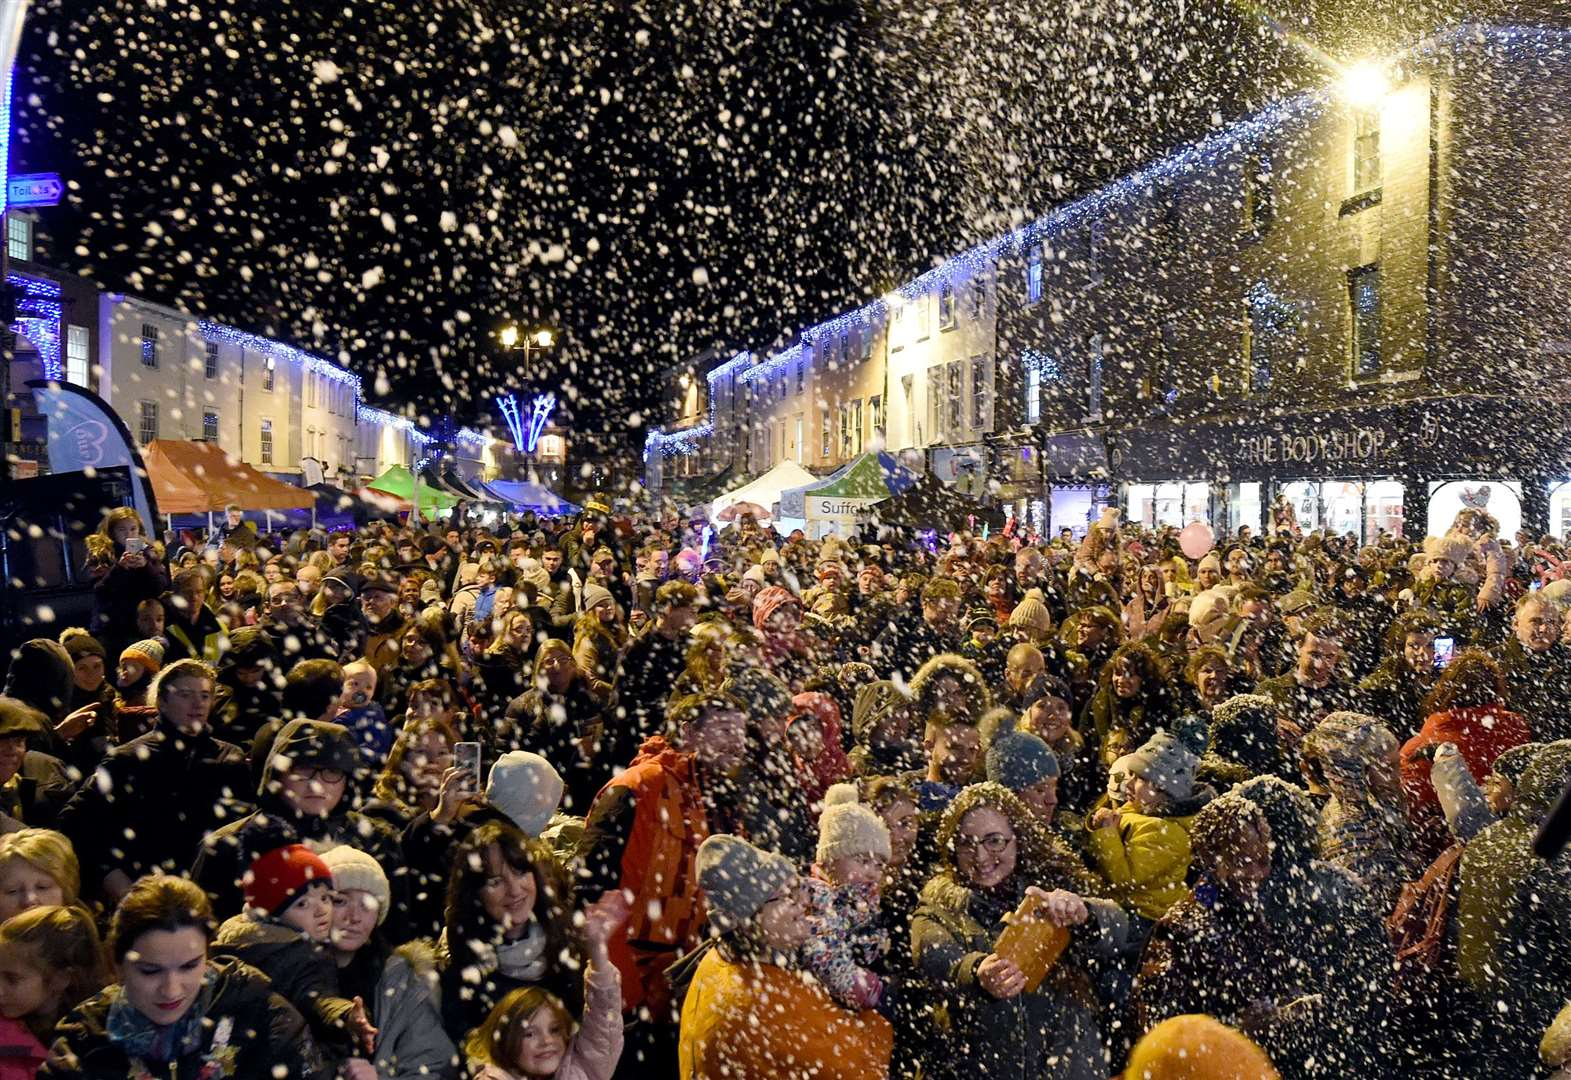 Christmas arrives in town as hero switches on the lights